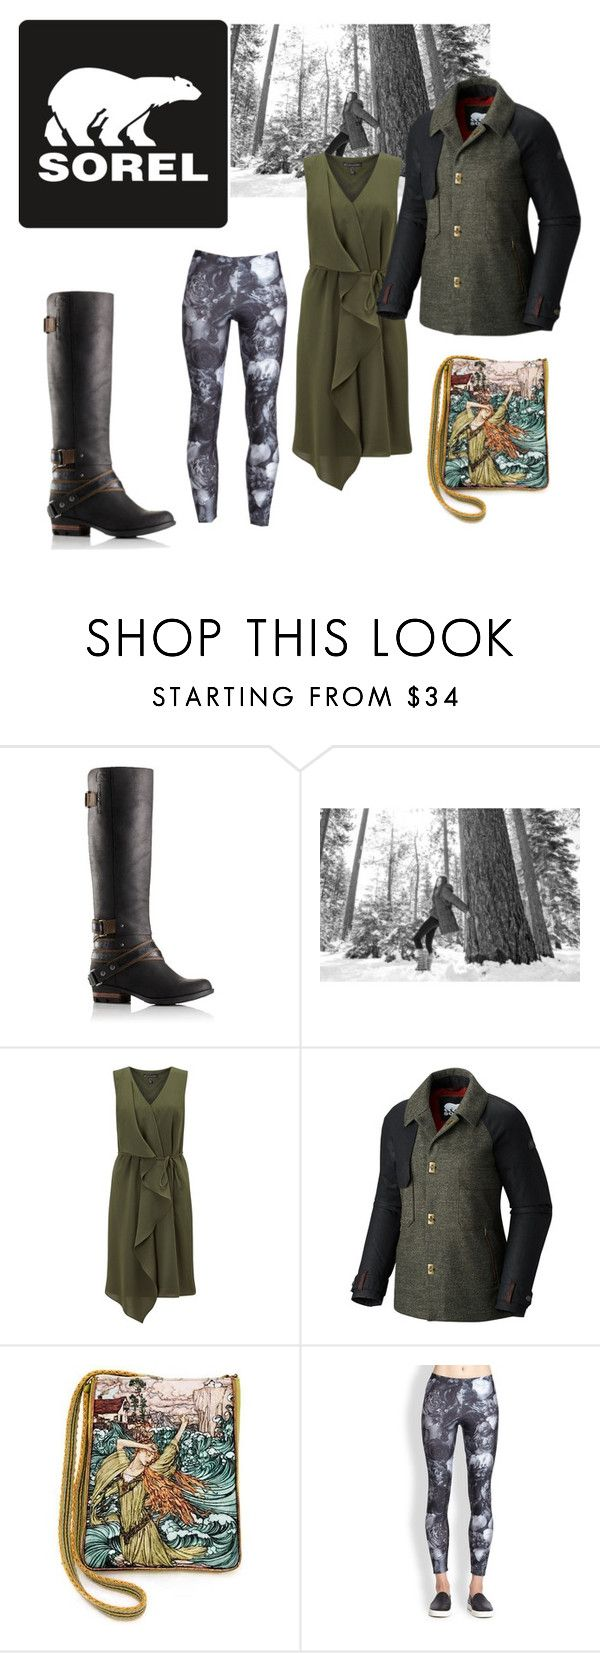 """Tame Winter with SOREL: Contest Entry"" by sabrina-fatma-ahmad ❤ liked on Polyvore featuring SOREL, Adrianna Papell, Zara Terez and sorelstyle"